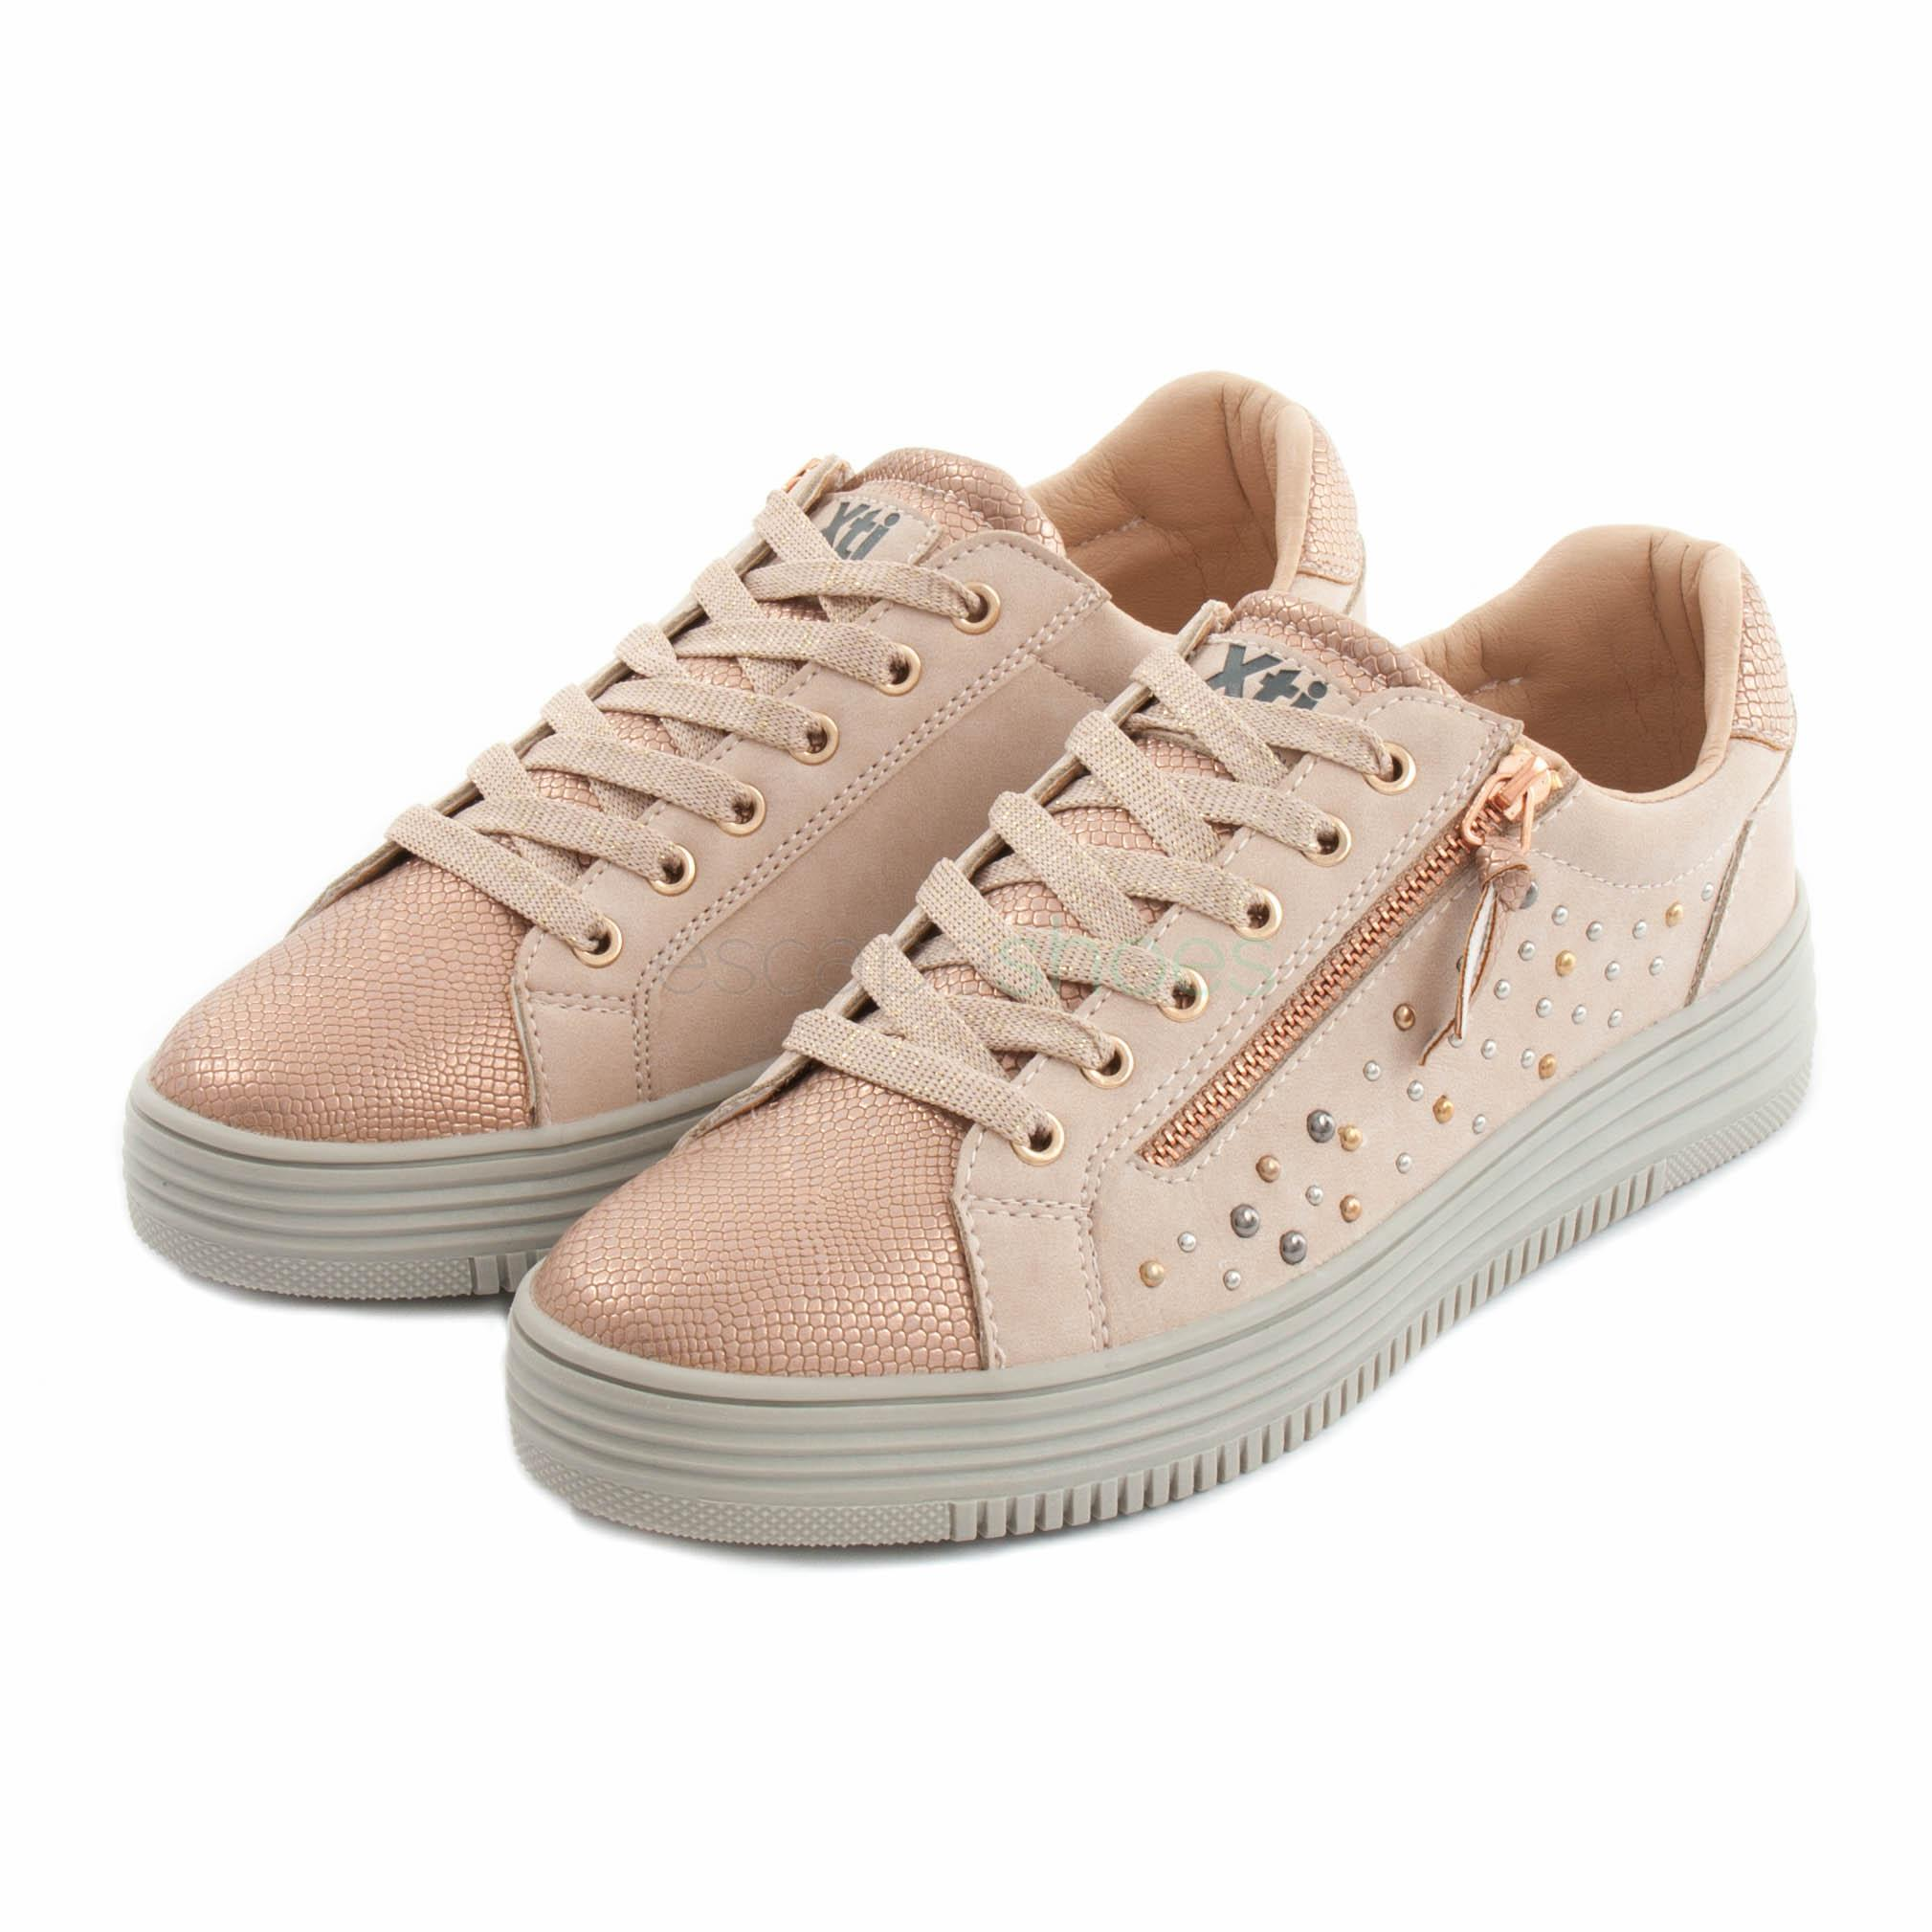 Pink Autoclave Buy Your Online Here Sneakers Xti Store qwxPfx